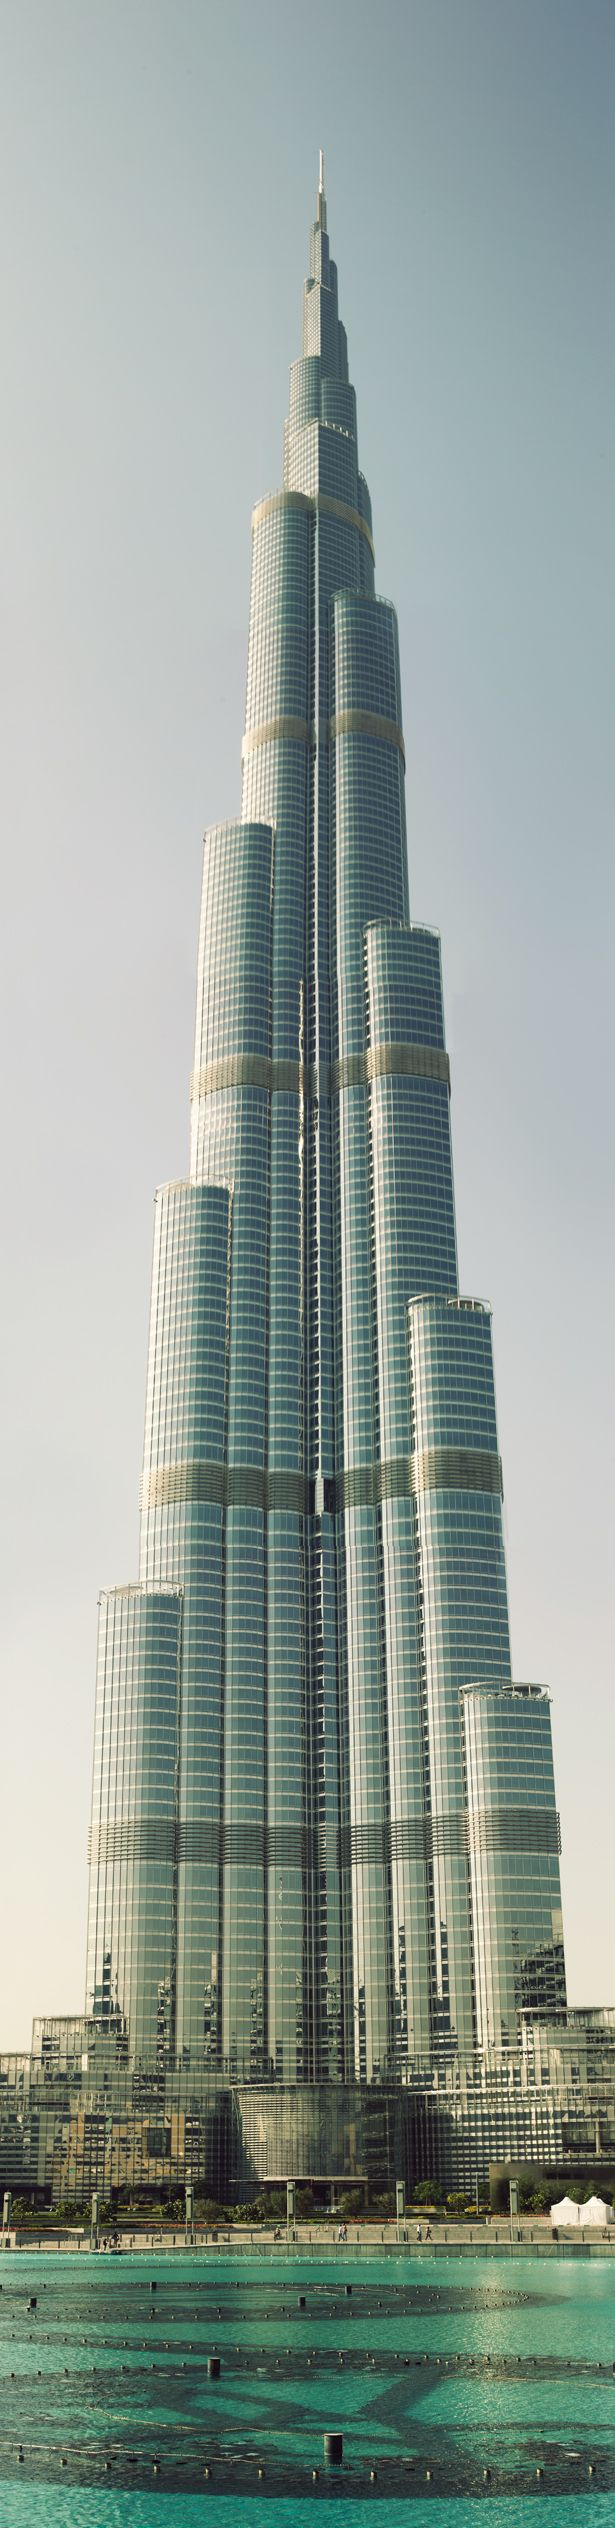 Extraordinary union of engineering, architecture and art. Burj Khalifa (Dubai) - the tallest tower in the world. In my bucketlist.